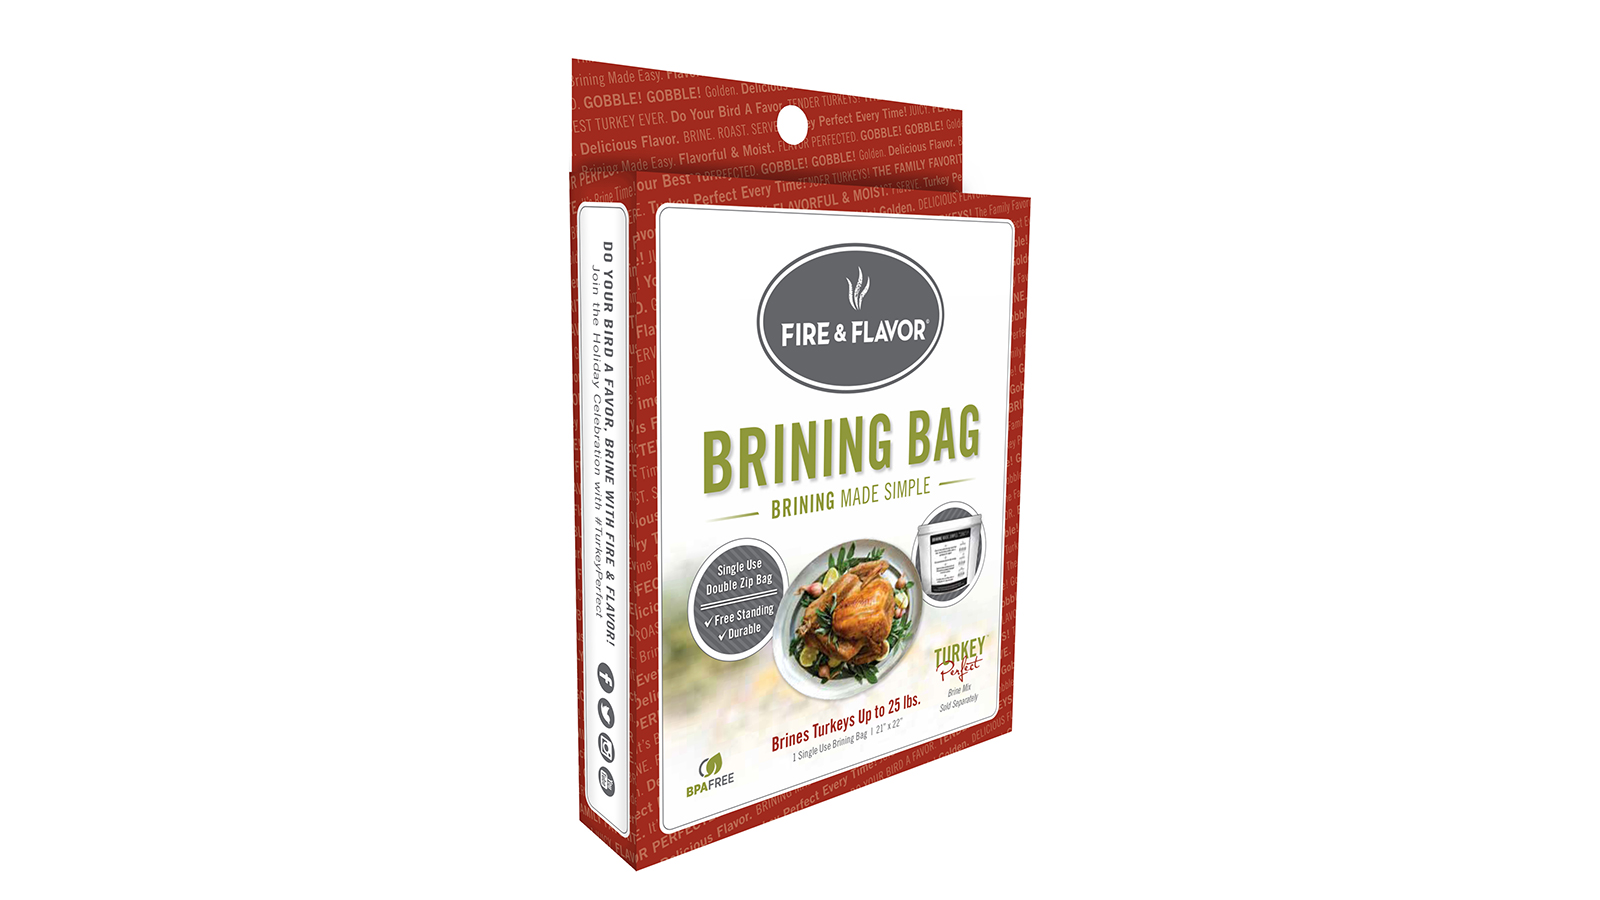 Fire and Flavor Brining Bags